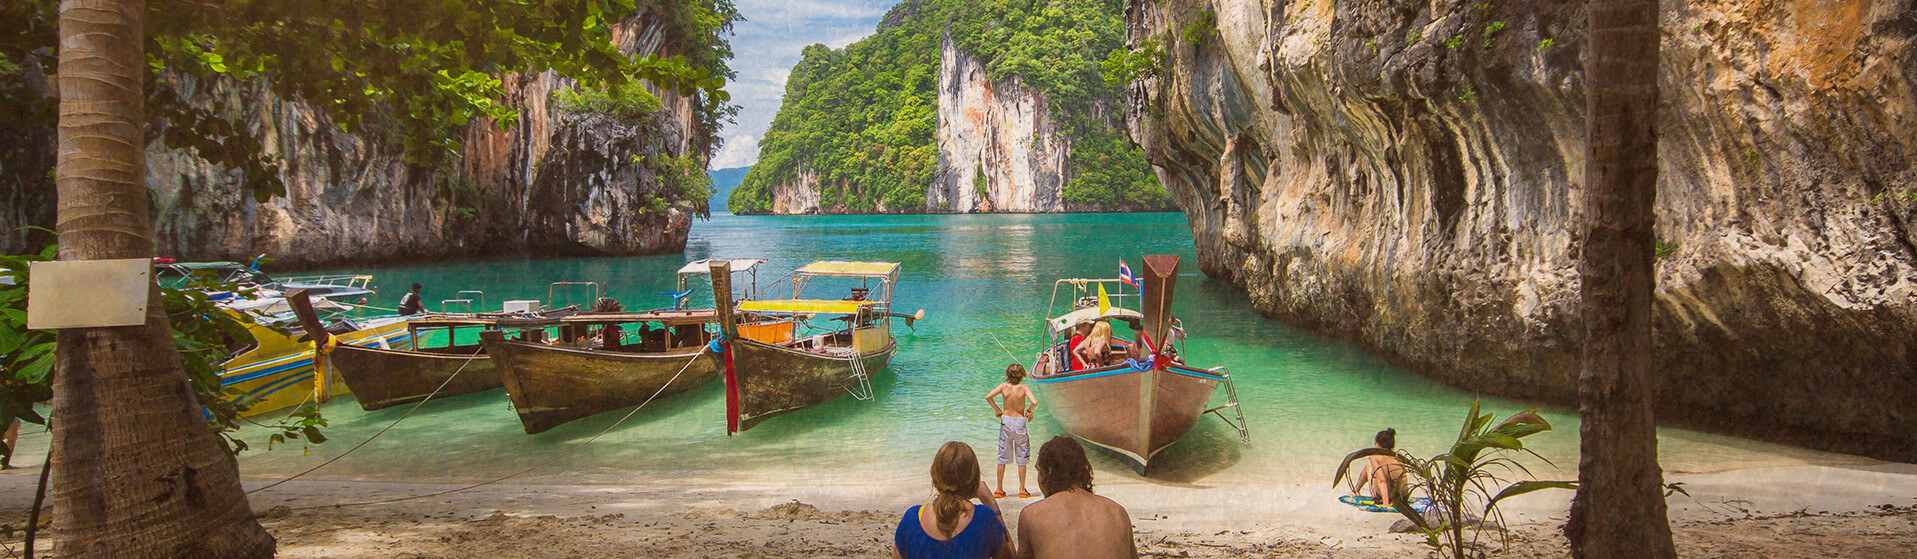 Thailand vacation landscape